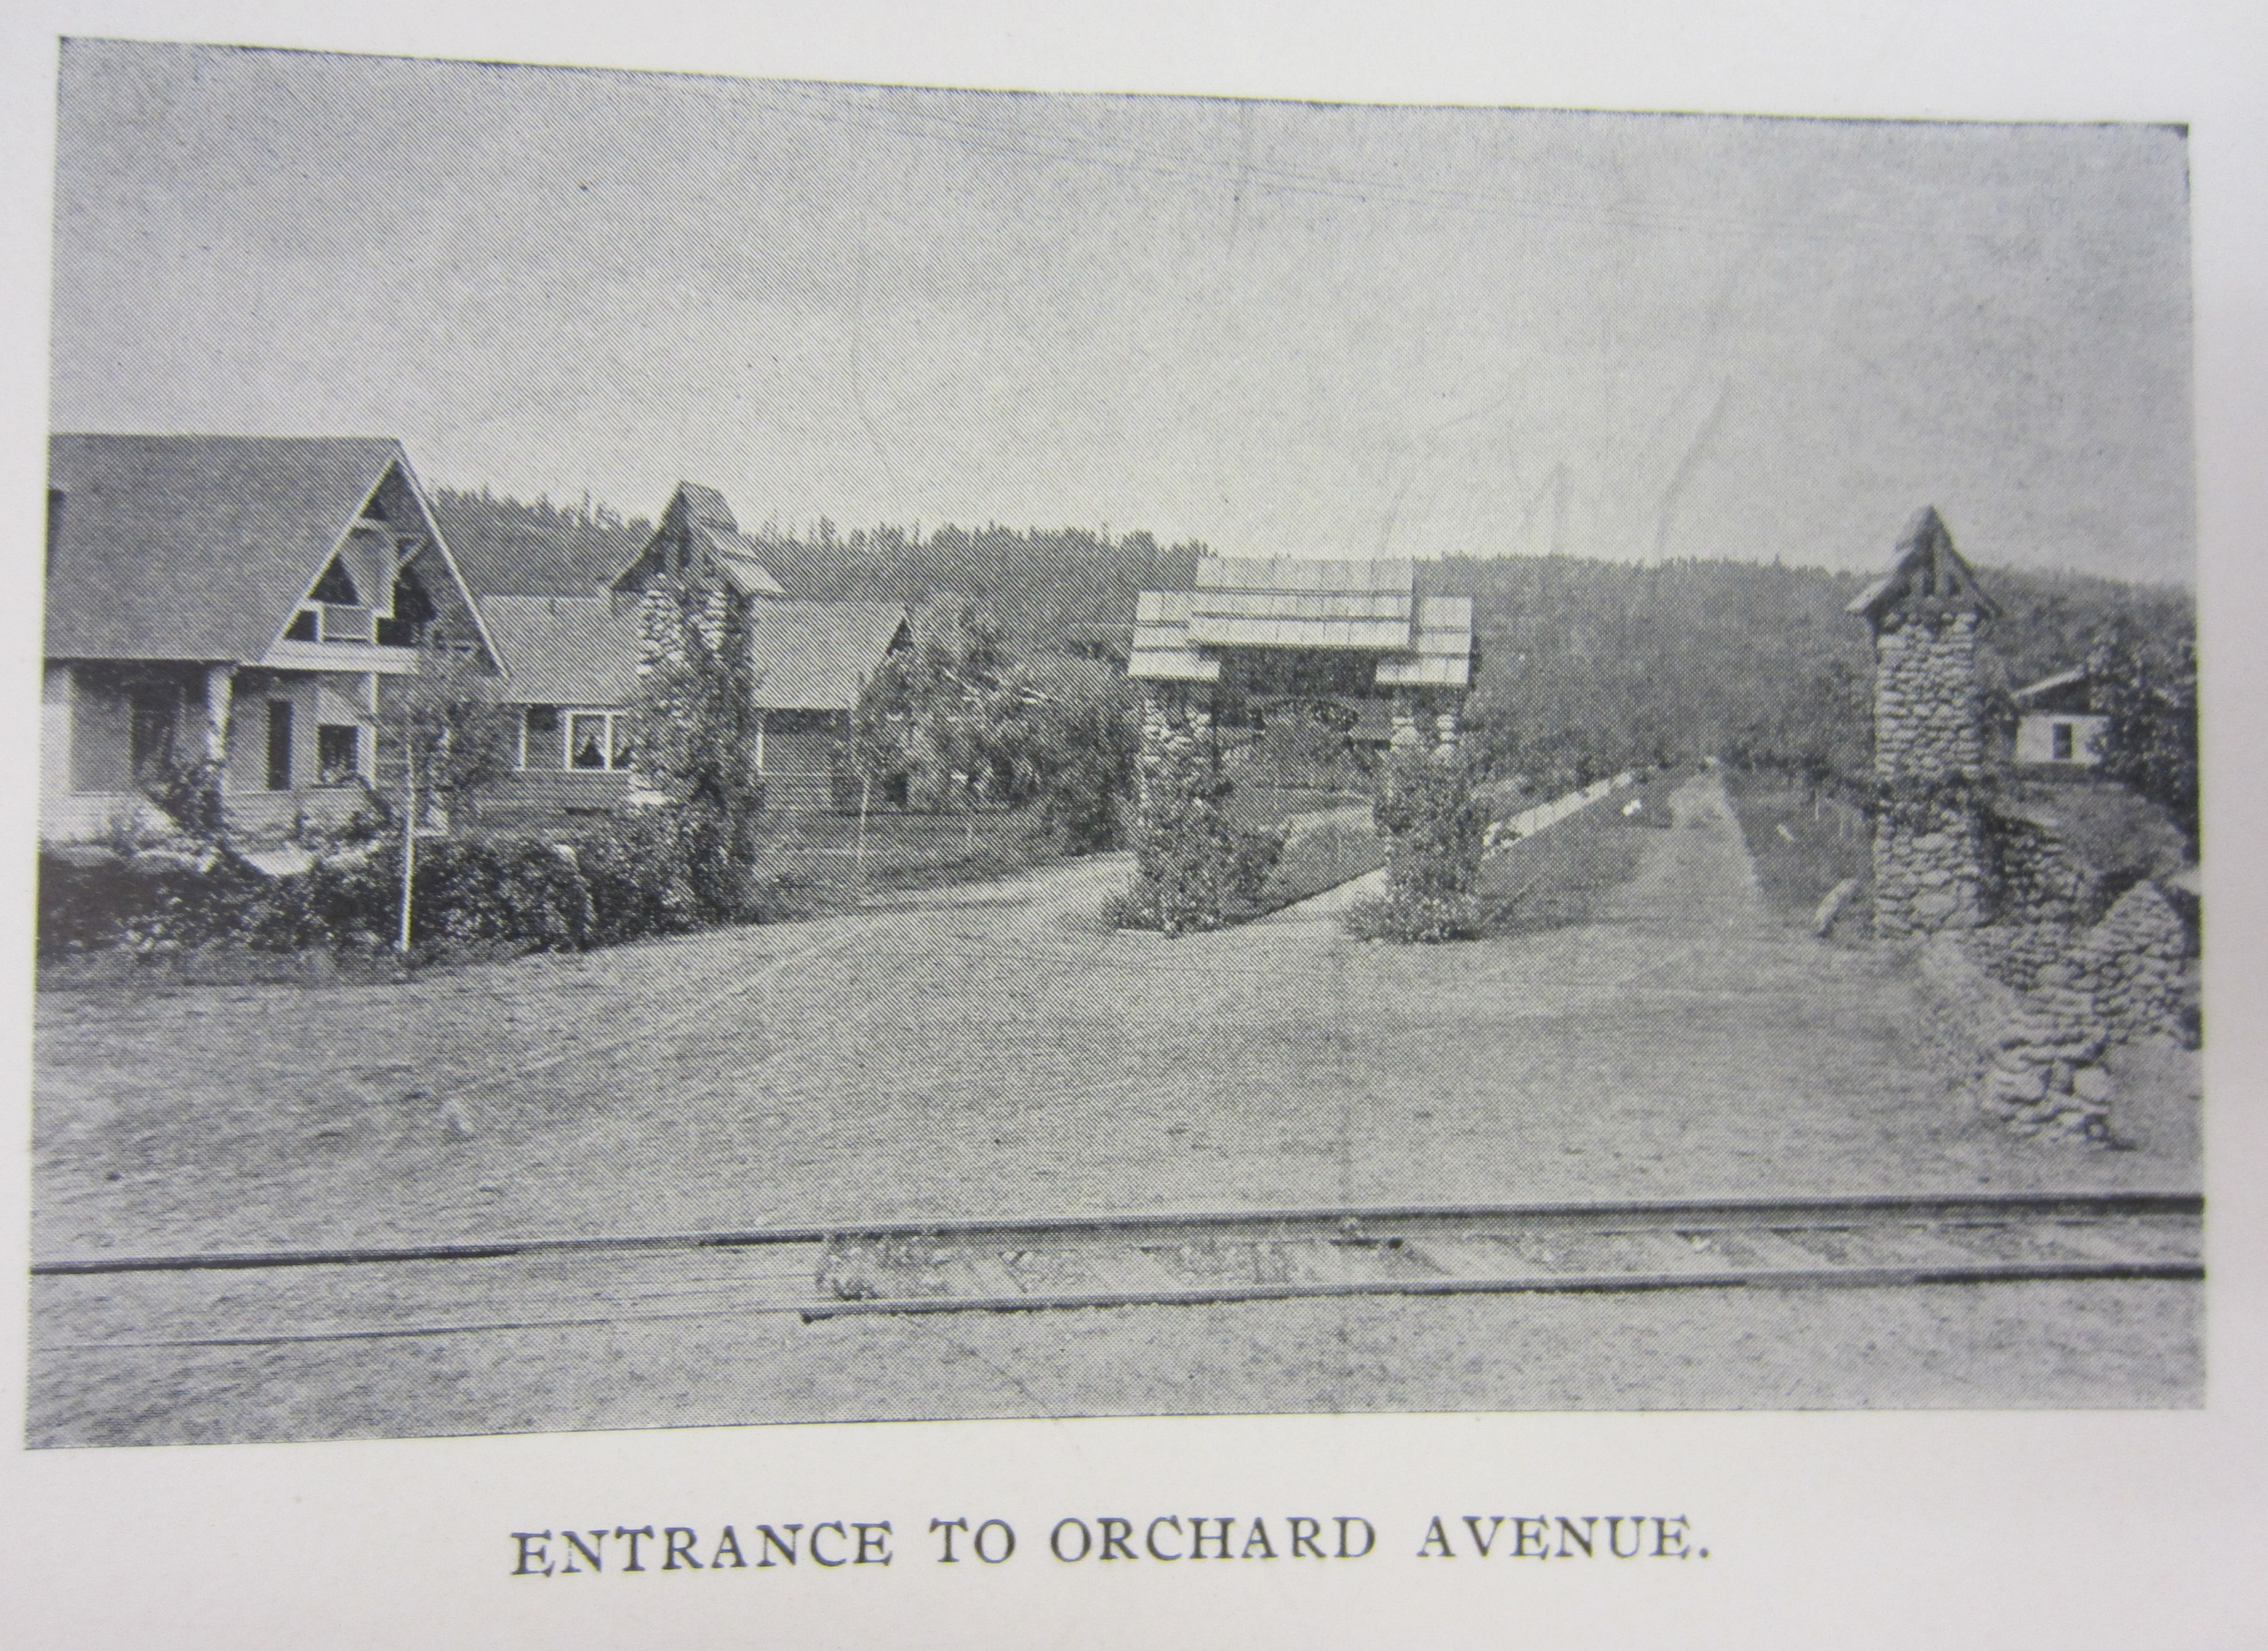 Entrance to Orchard Avenue